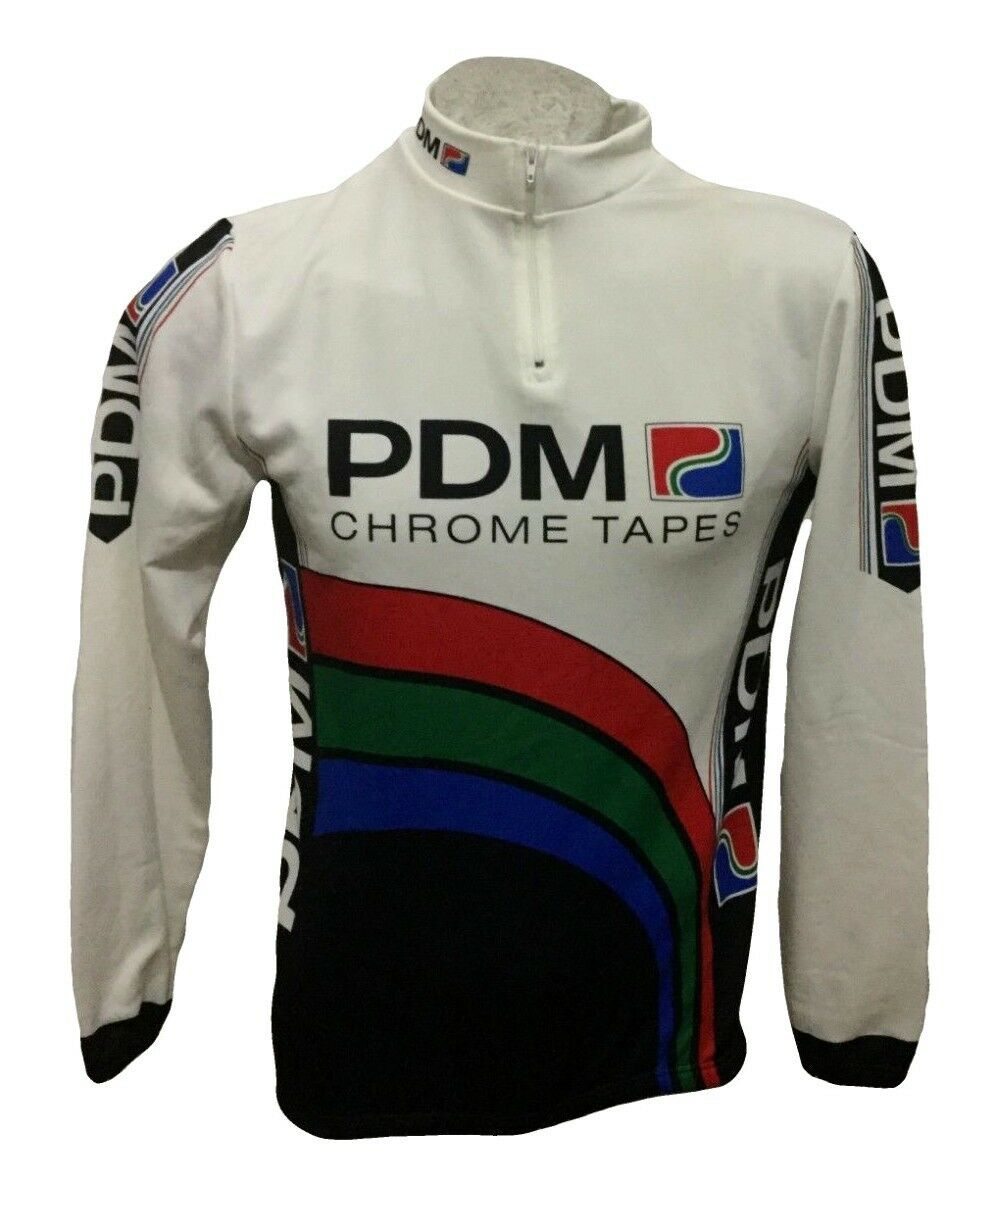 MAGLIA CICLISMO ULTIMA PDM CHROME TAPES CYCLING SHIRT TRIKOT JERSEY SIZE 5